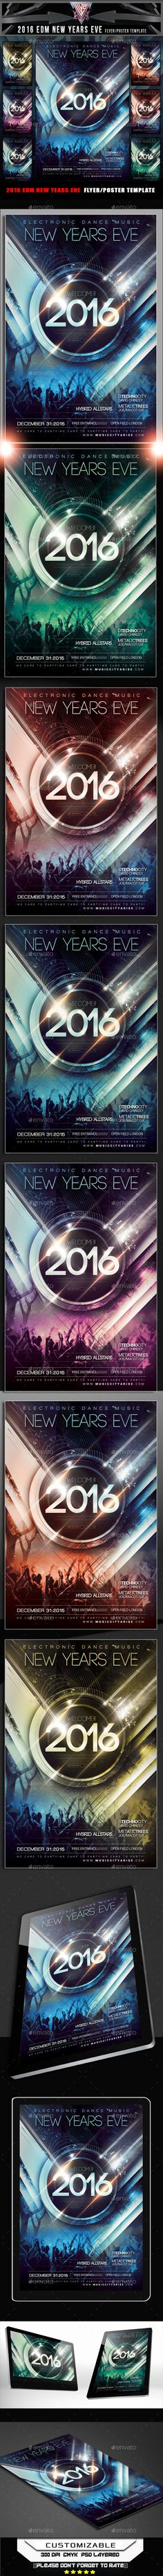 2016 EDM New Years Eve Flyer Template — Photoshop PSD #house #speaker • Available here → https://graphicriver.net/item/2016-edm-new-years-eve-flyer-template/13832062?ref=pxcr